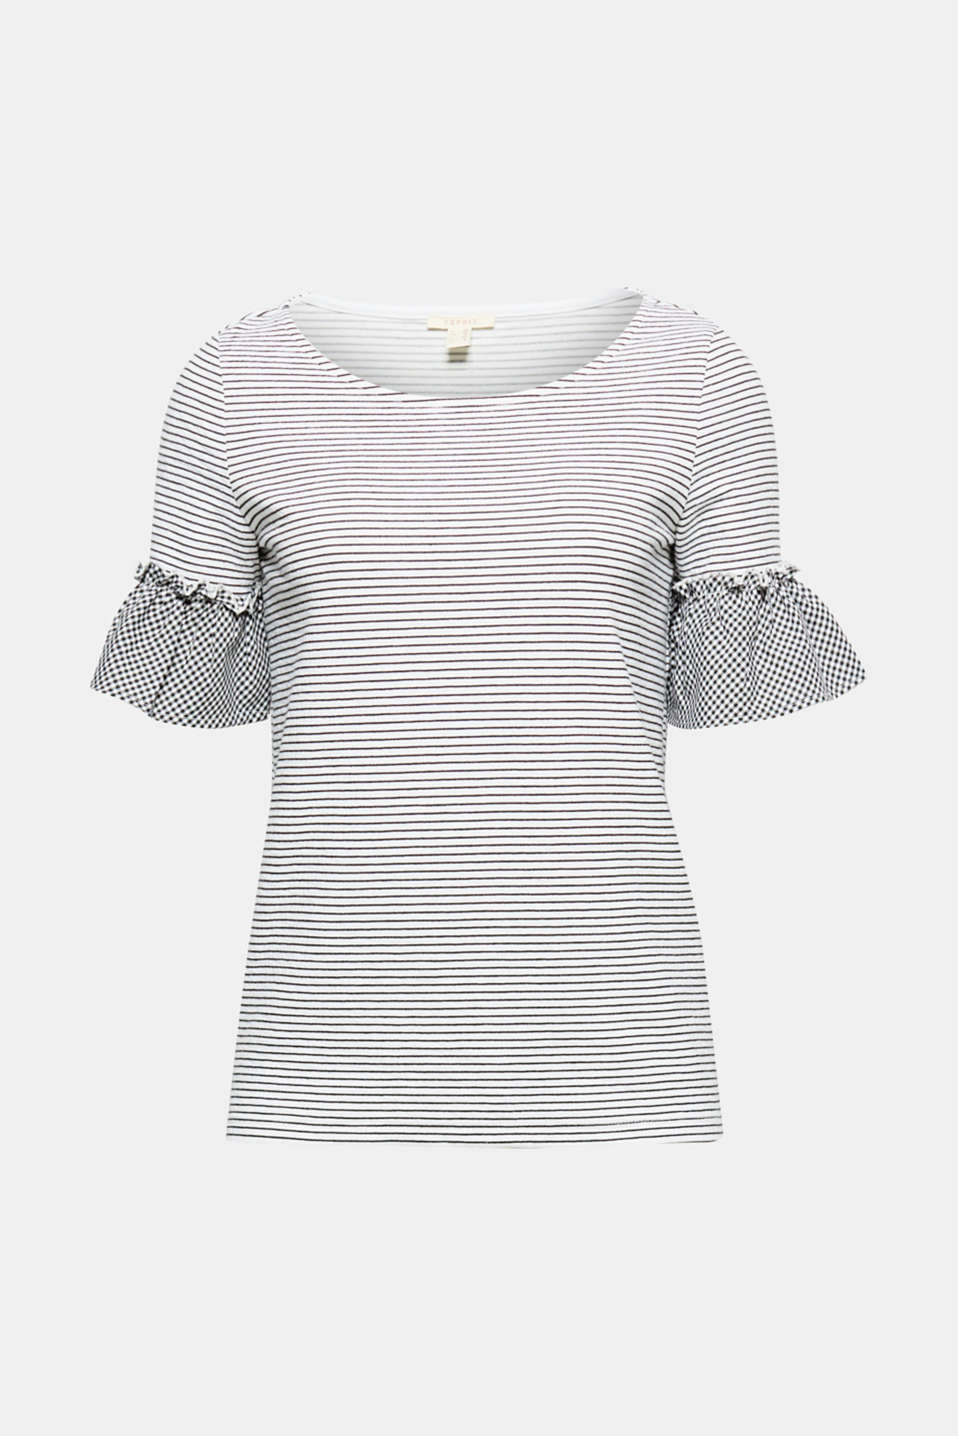 The mix of thick, soft jersey with stripes and lightweight fabric with a gingham check gives this top its new look!